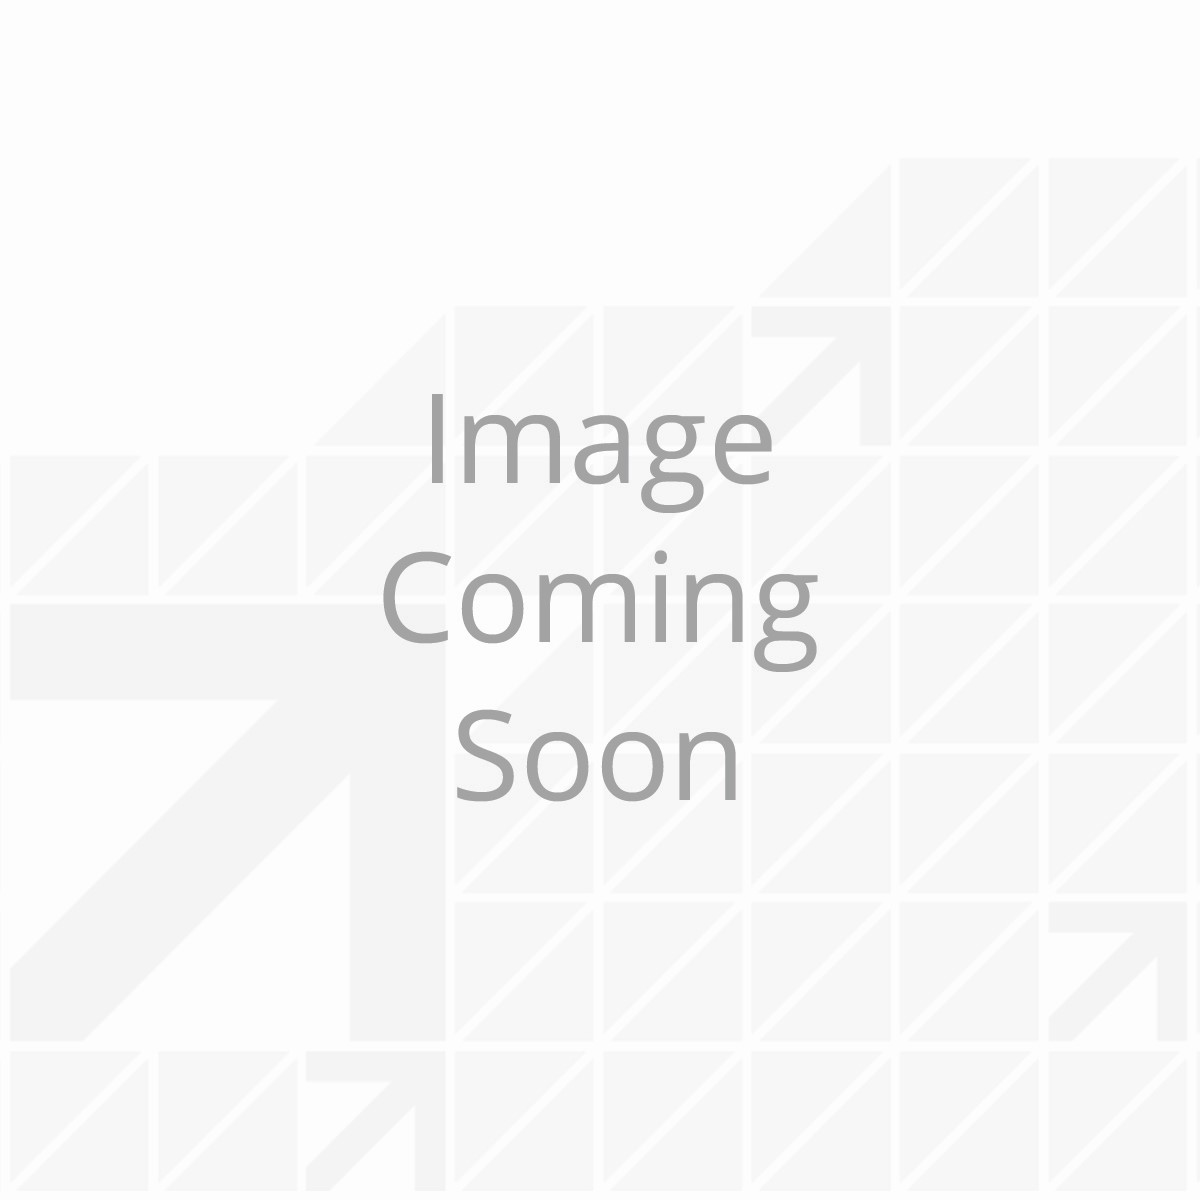 HDMI CABLE - Various Sizes